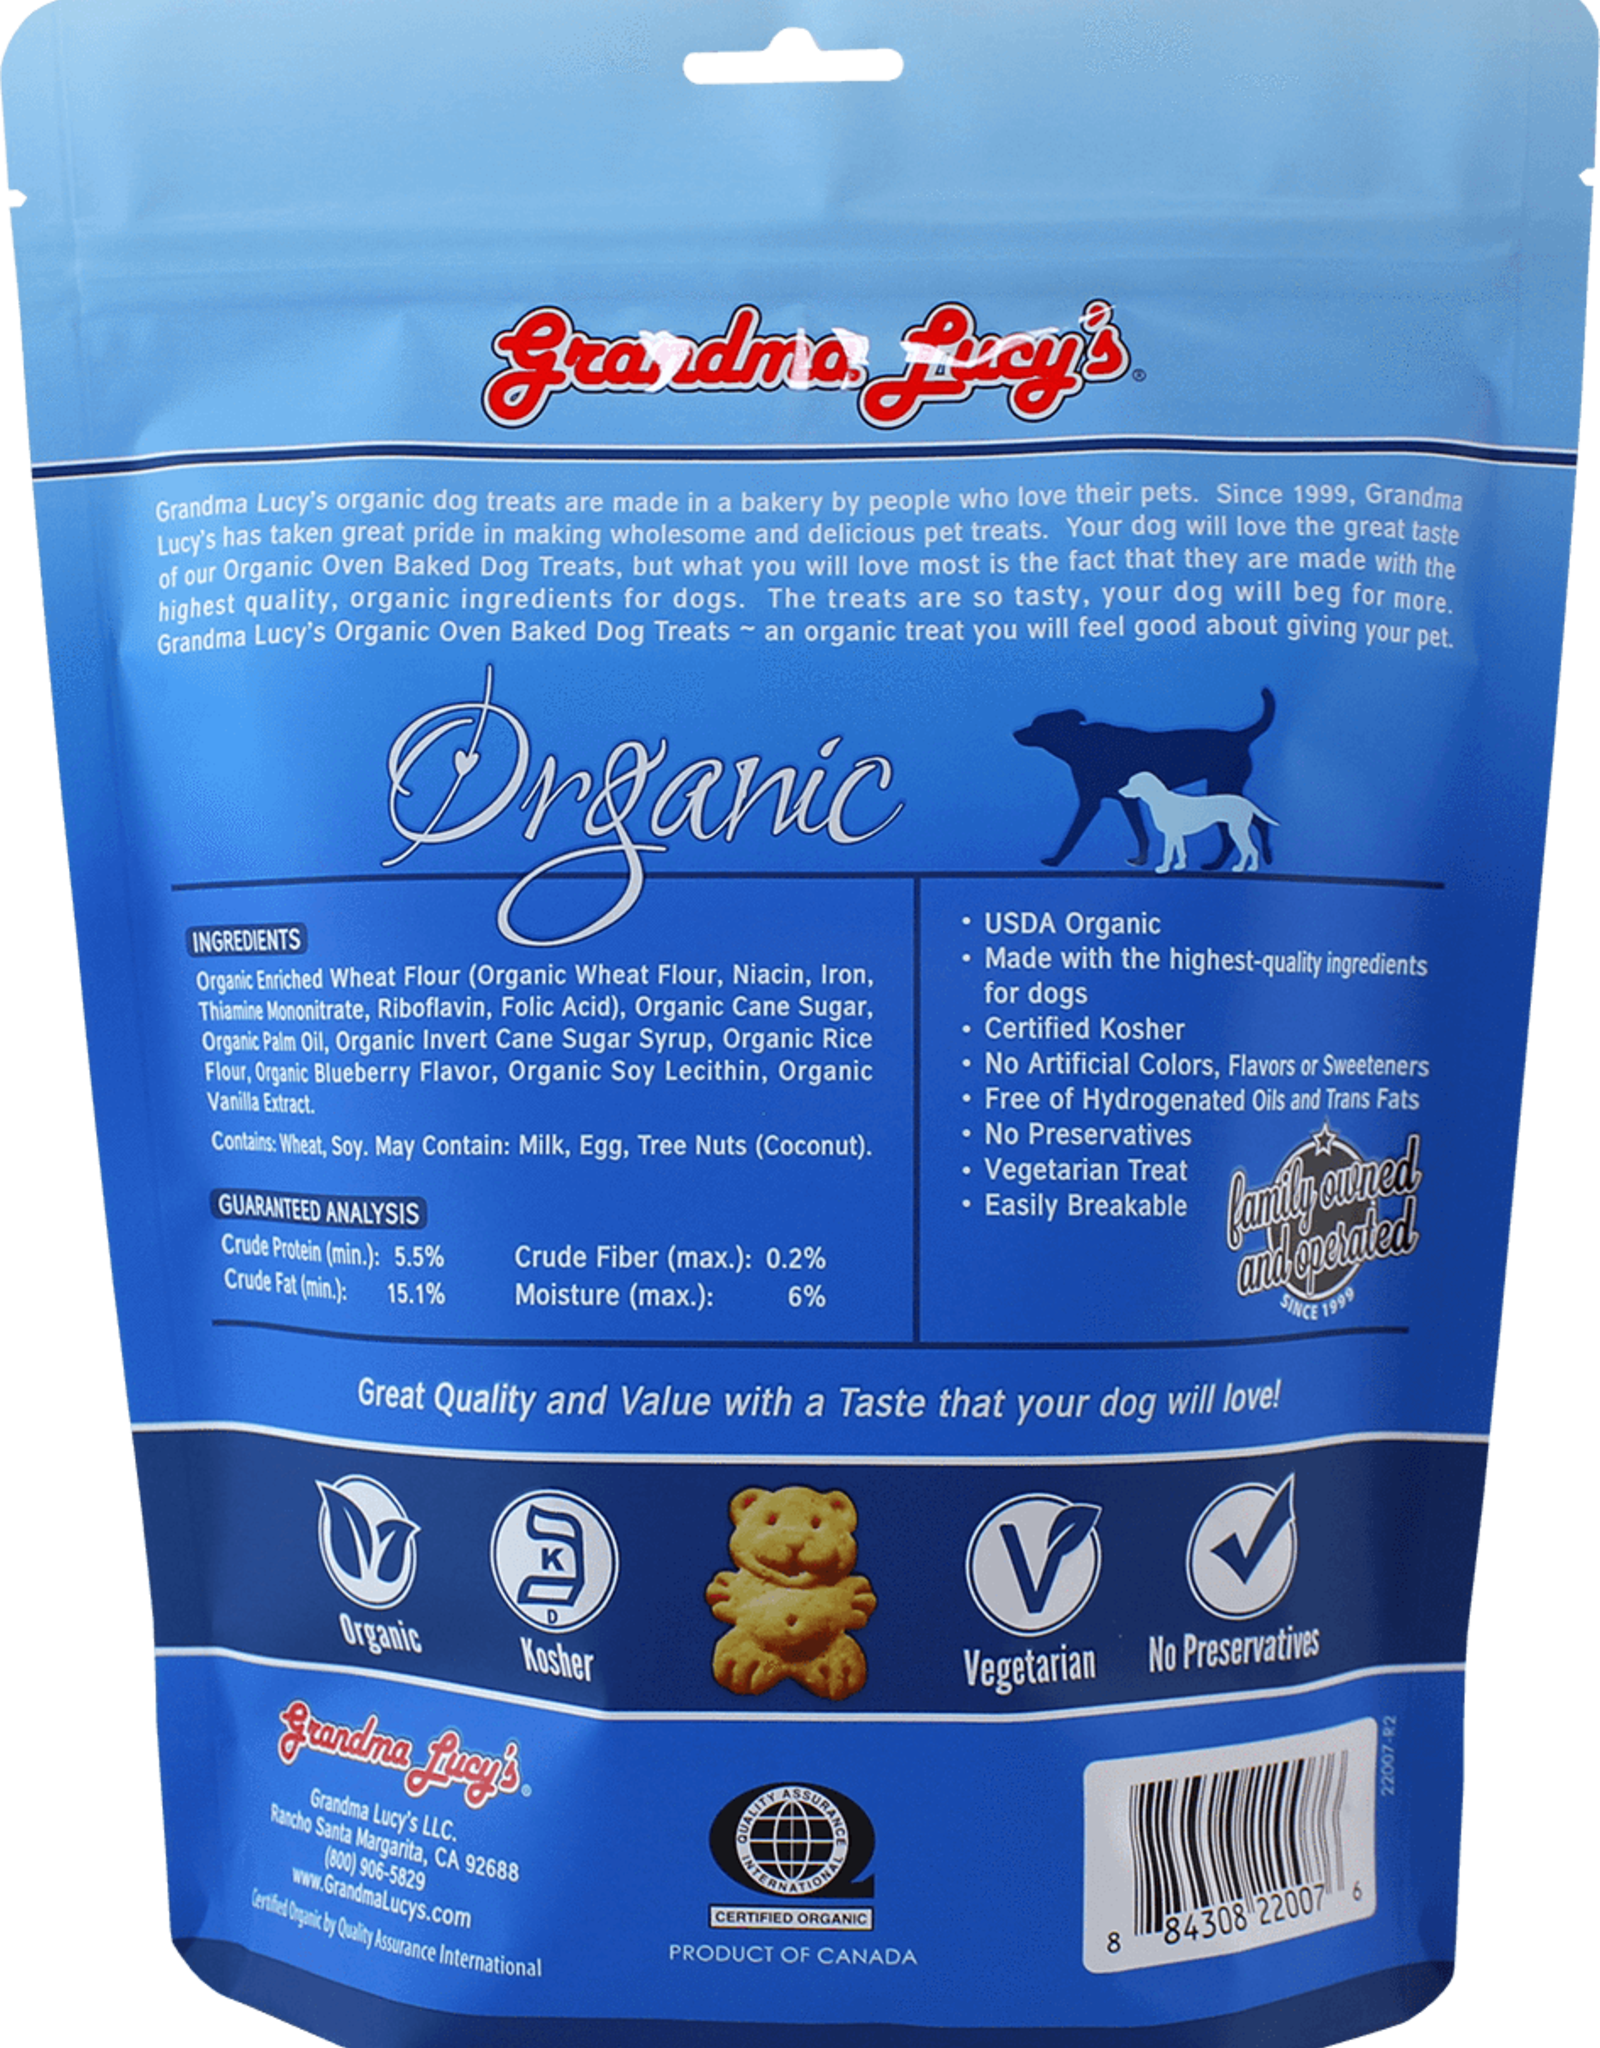 Grandma Lucy's Grandma Lucy's | Organic Oven Baked Dog Treats Blueberry 14 oz